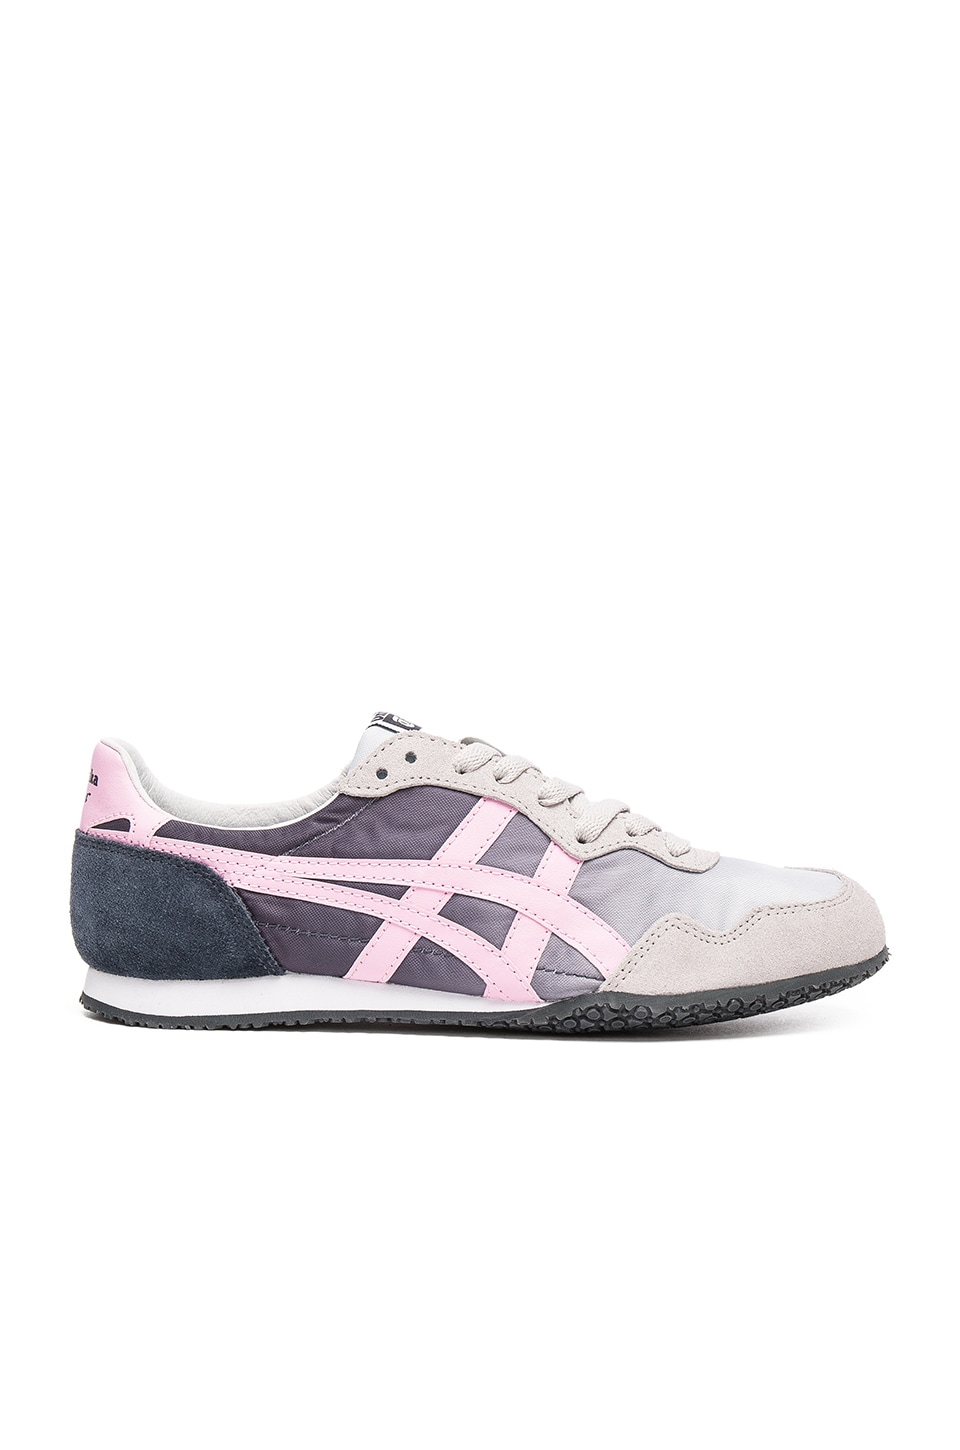 Onitsuka Tiger Serrano in Soft Grey and Light Pink